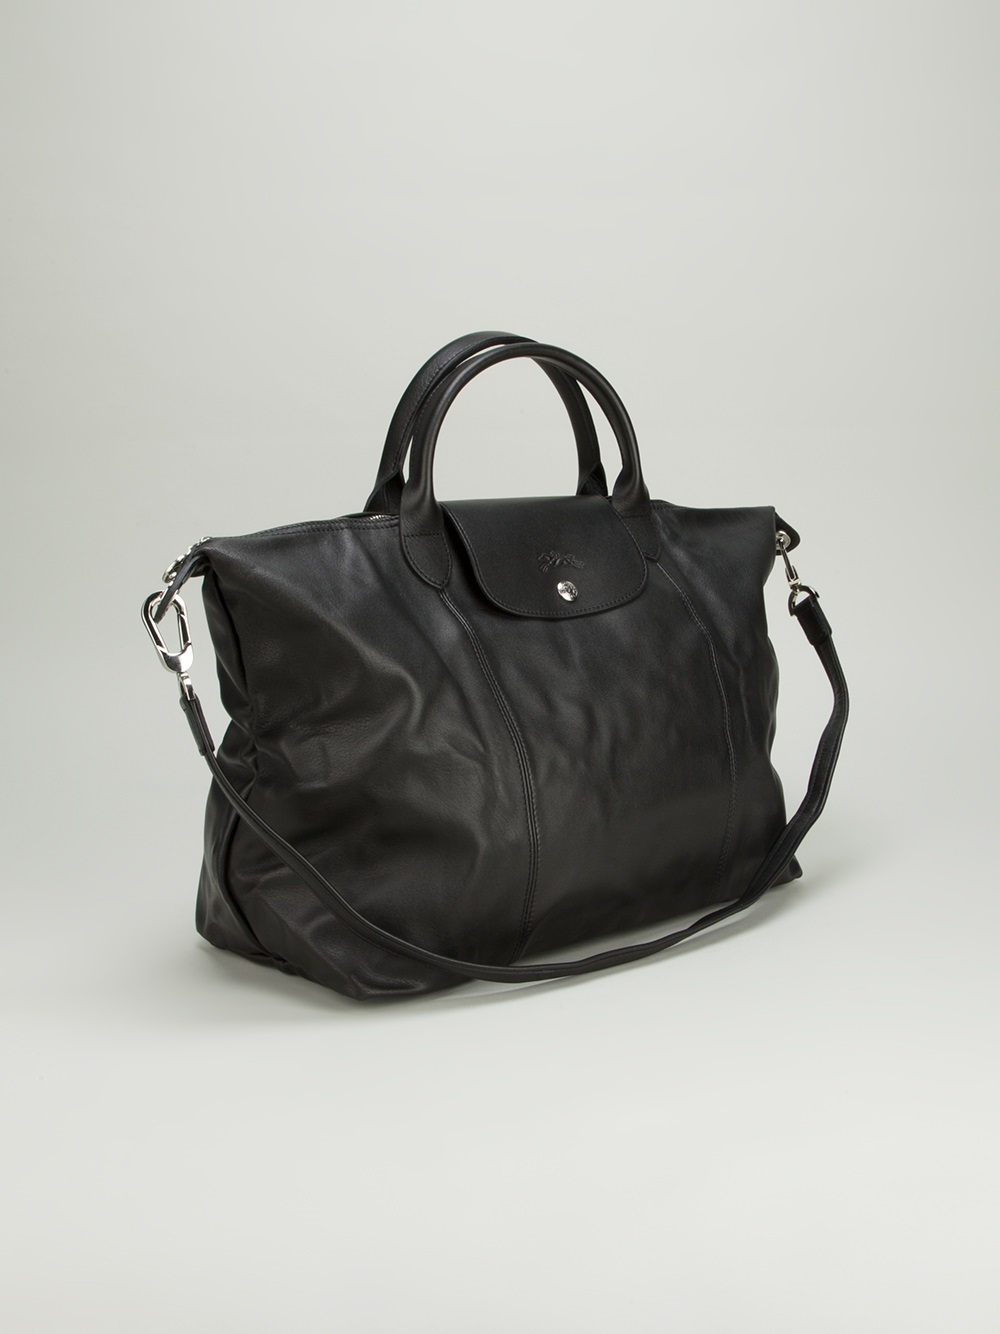 Longchamp Le Pliage Cuir Tote in Black - Lyst 293105a058